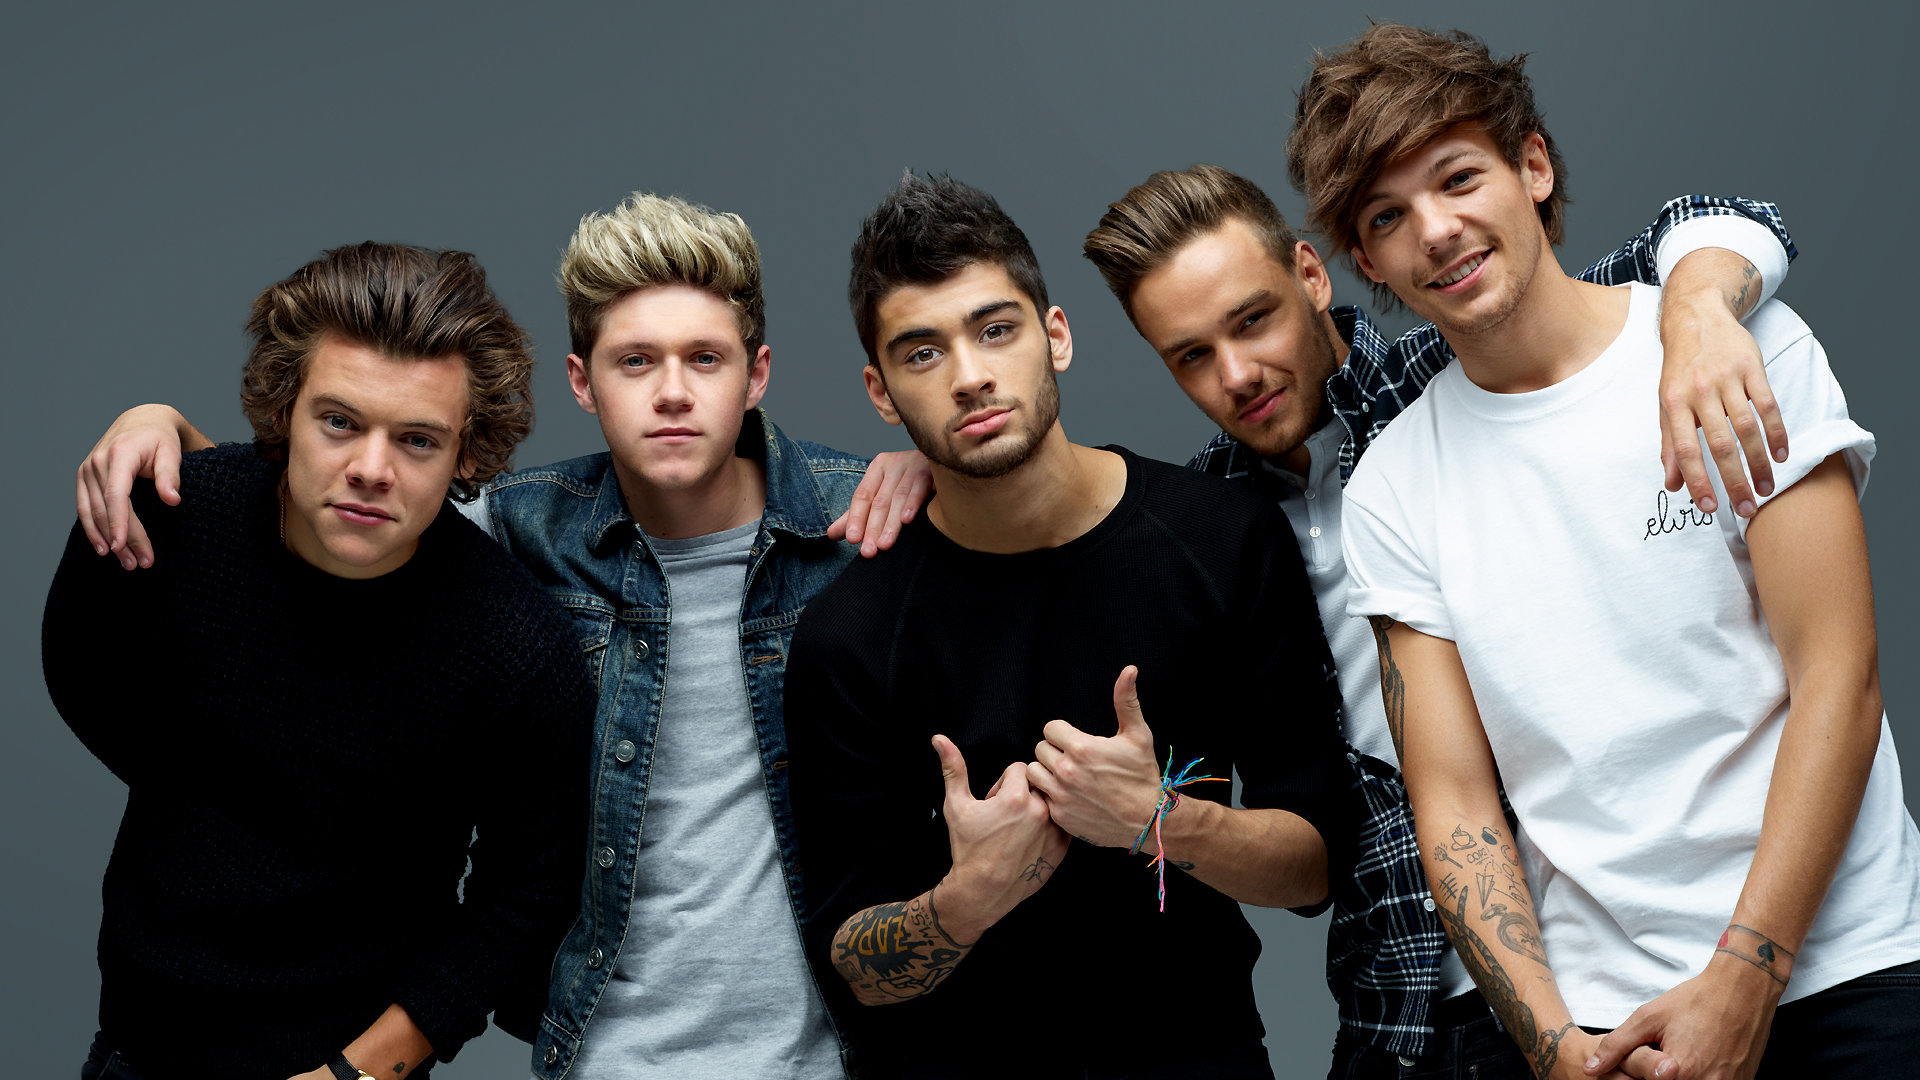 One Direction Wallpapers 1920x1080 Full Hd 1080p Desktop Backgrounds